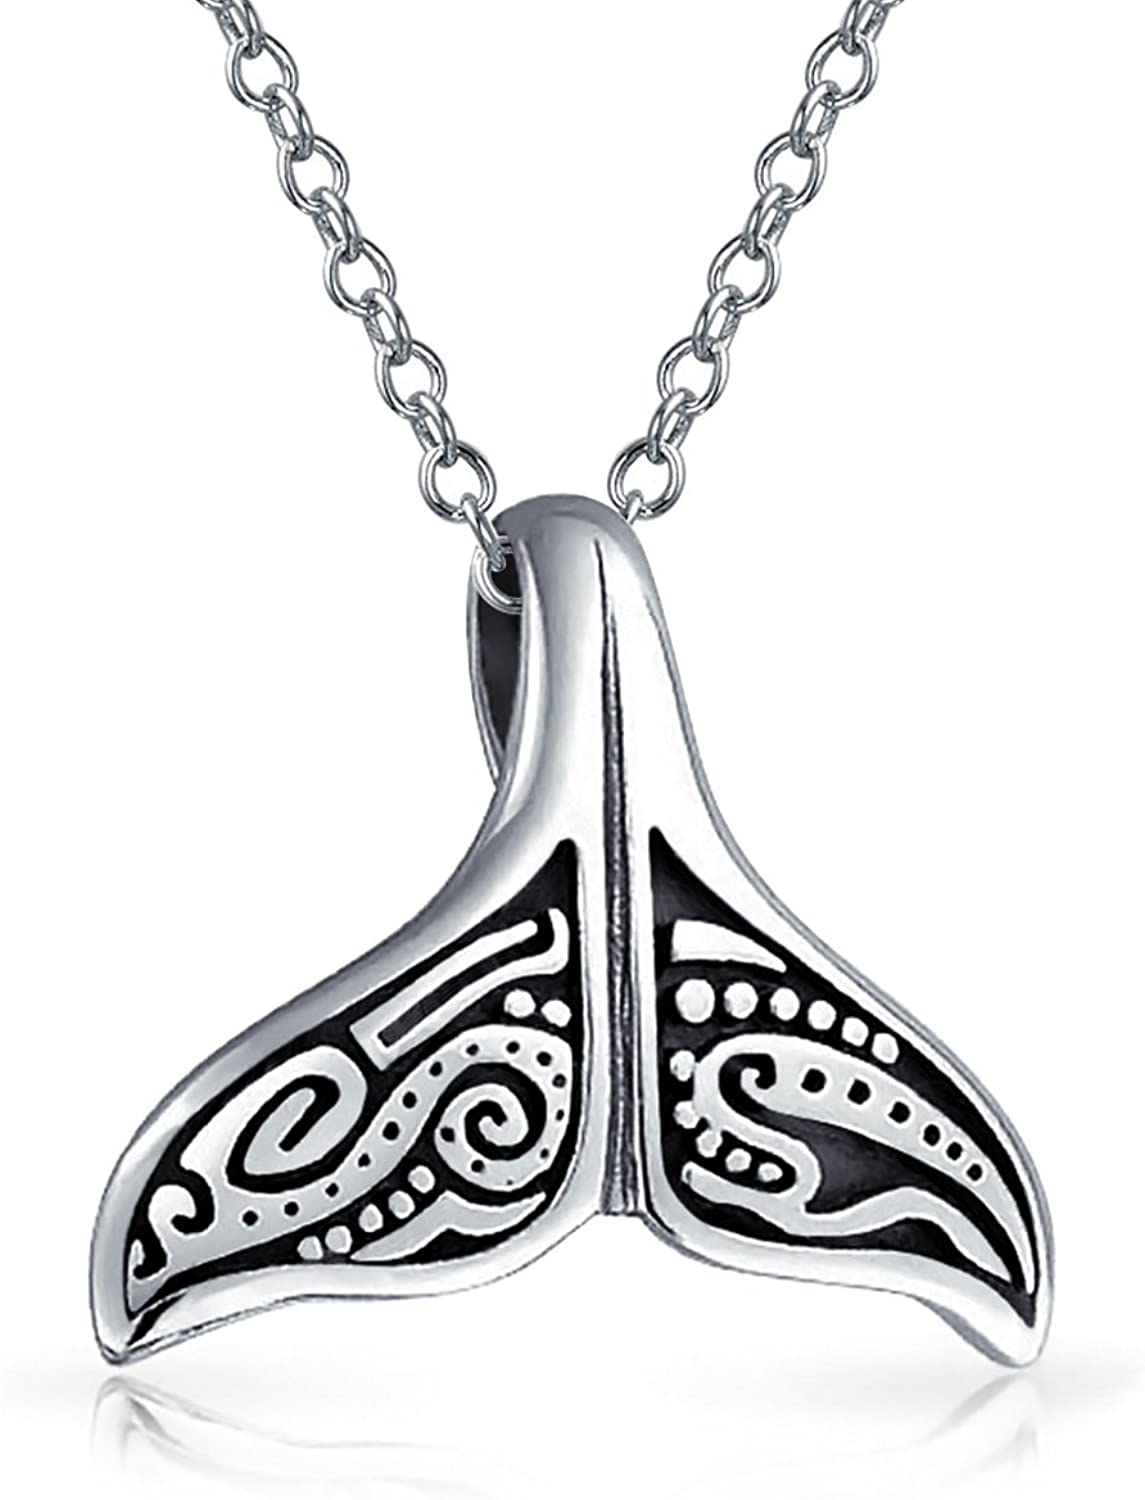 Nautical Costal Tail Whale Fin Pendant Necklace For Men For Women Oxidized 925 Sterling Silver